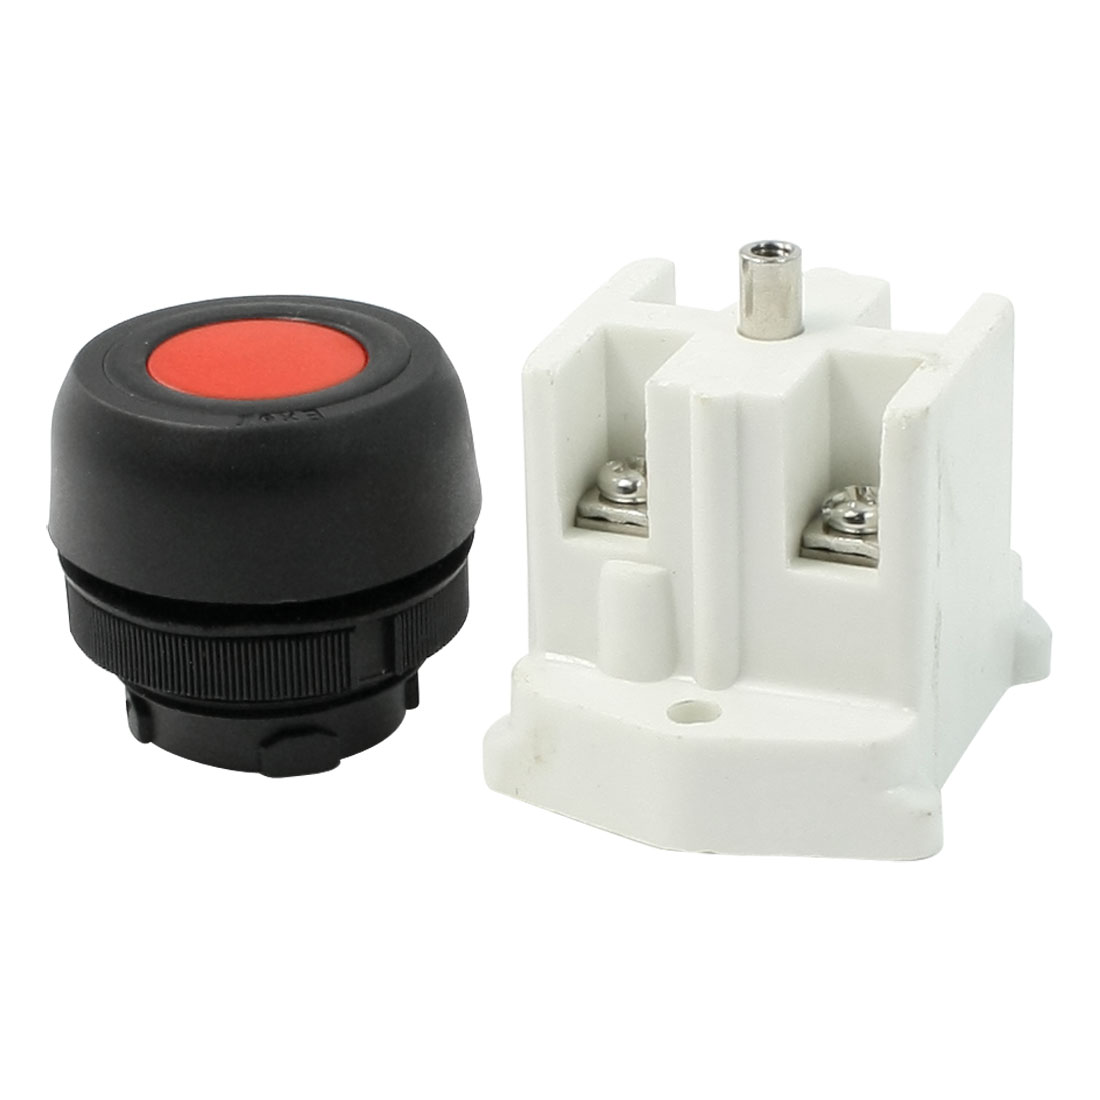 AC 380V 10A DPST Momentary Red Round Head Push Button Switch